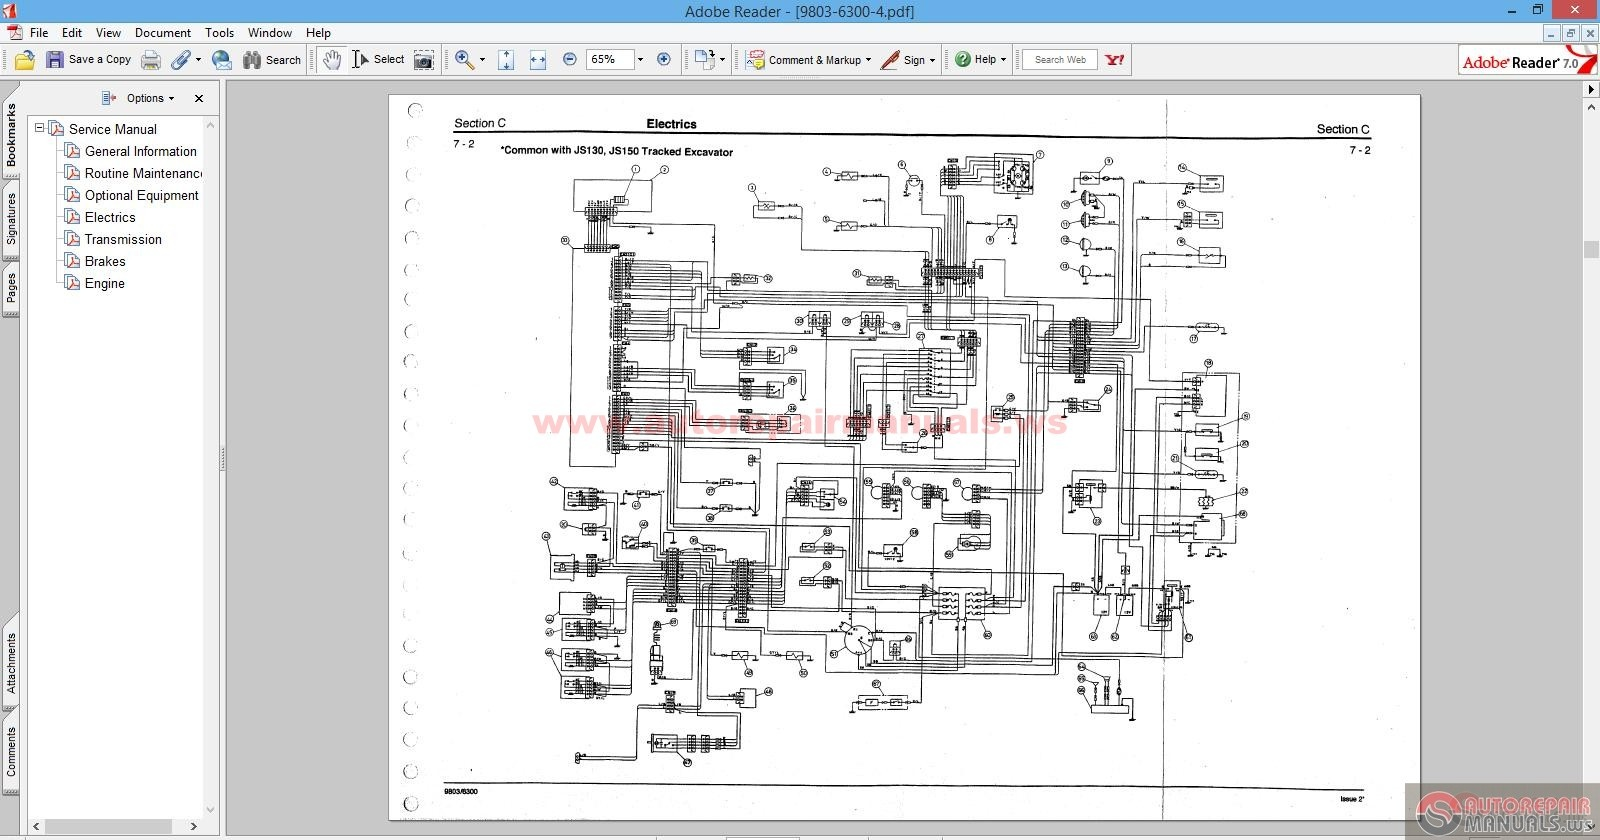 JCB_Compact_Serv_Manuals_Kg_S3A_Issue507 jcb wiring diagram efcaviation com jcb wiring diagram at gsmx.co